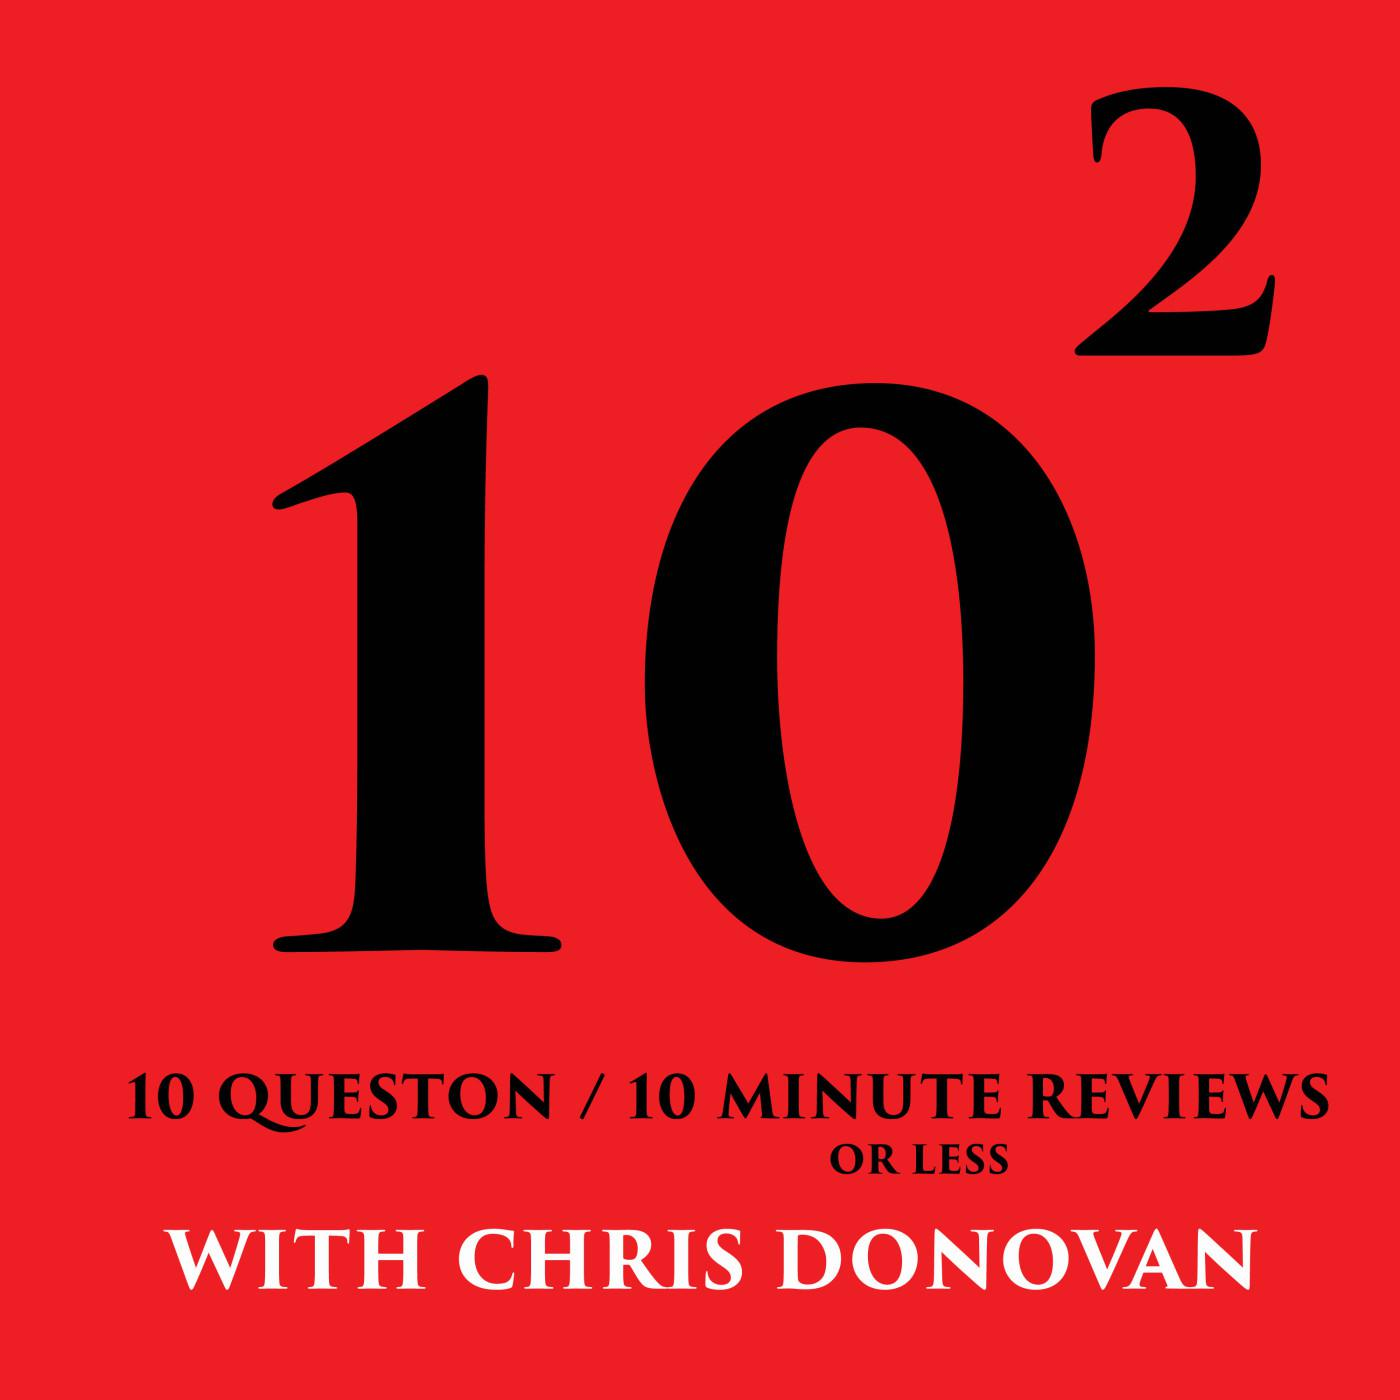 10 Squared 10 squared reviews (podcast) - this is funner | listen notes